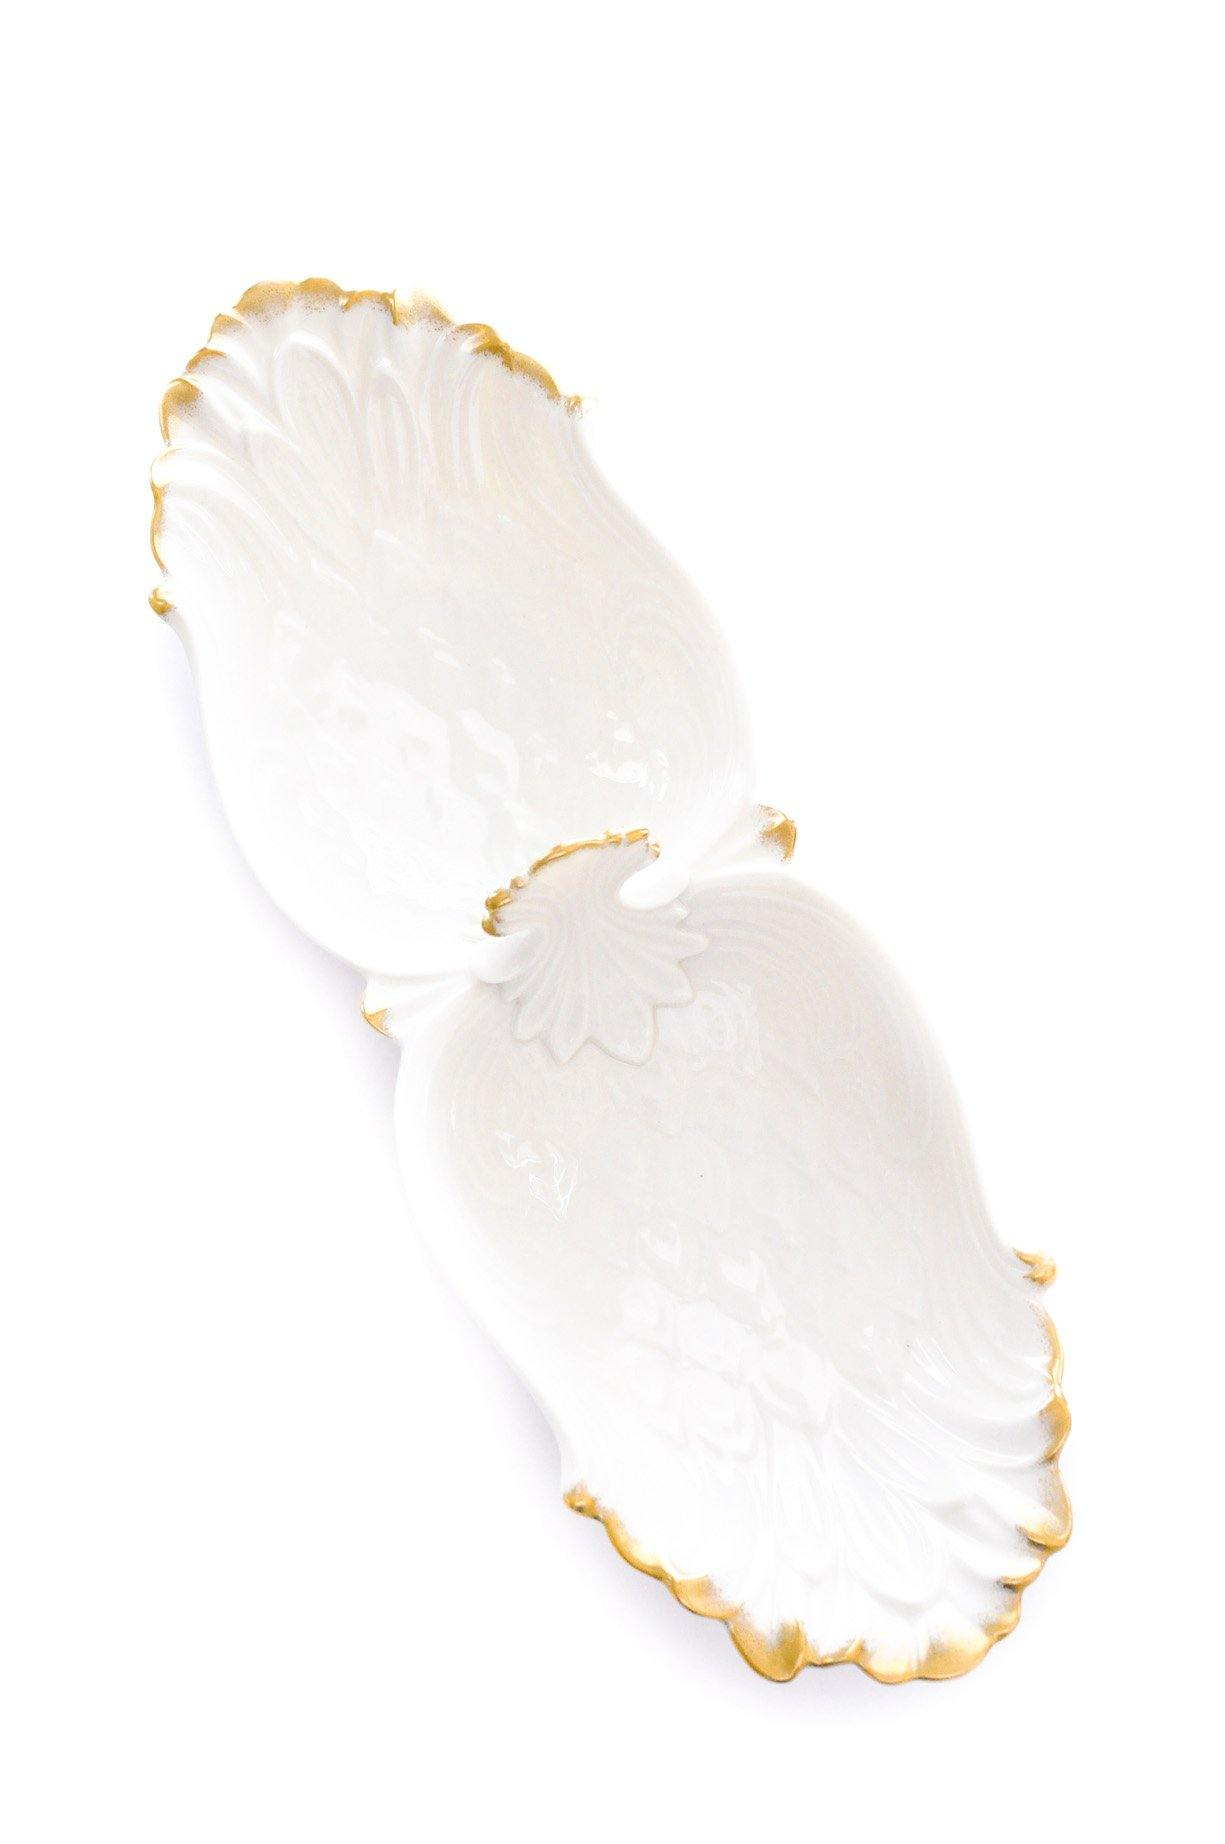 Feathered Jewelry Dish